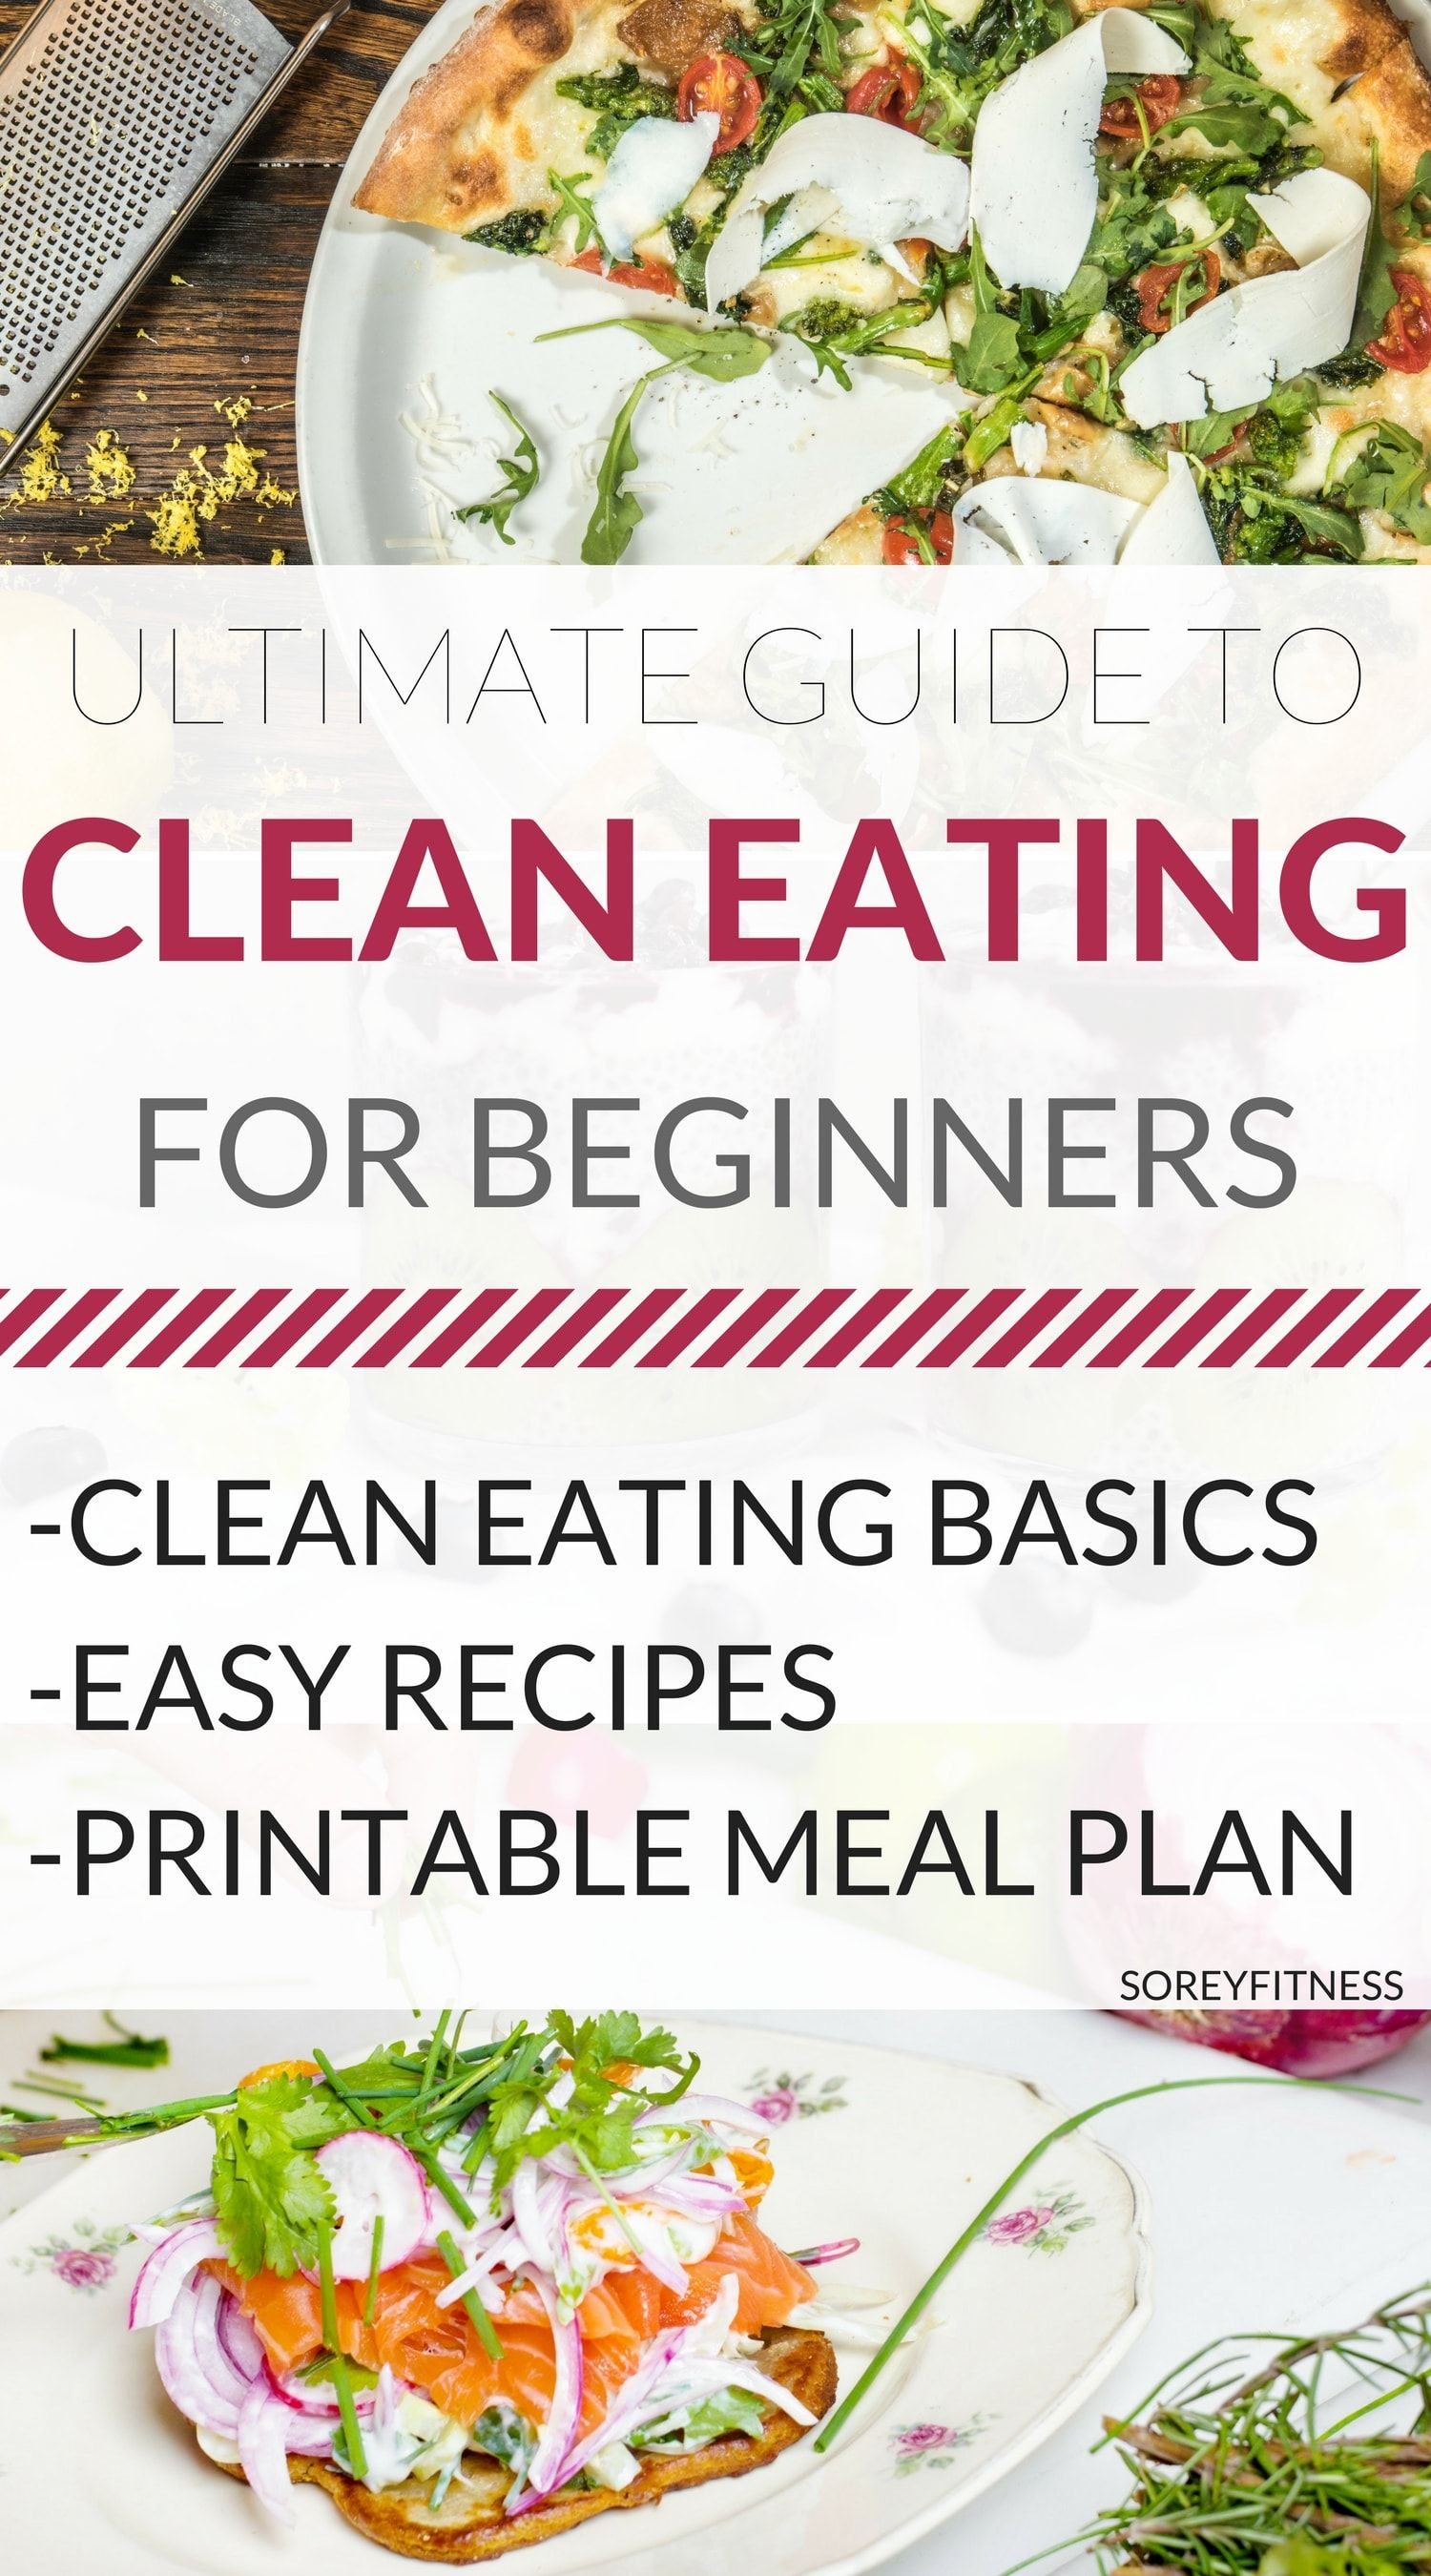 Clean Eating for Beginners [Ultimate Guide + Printable